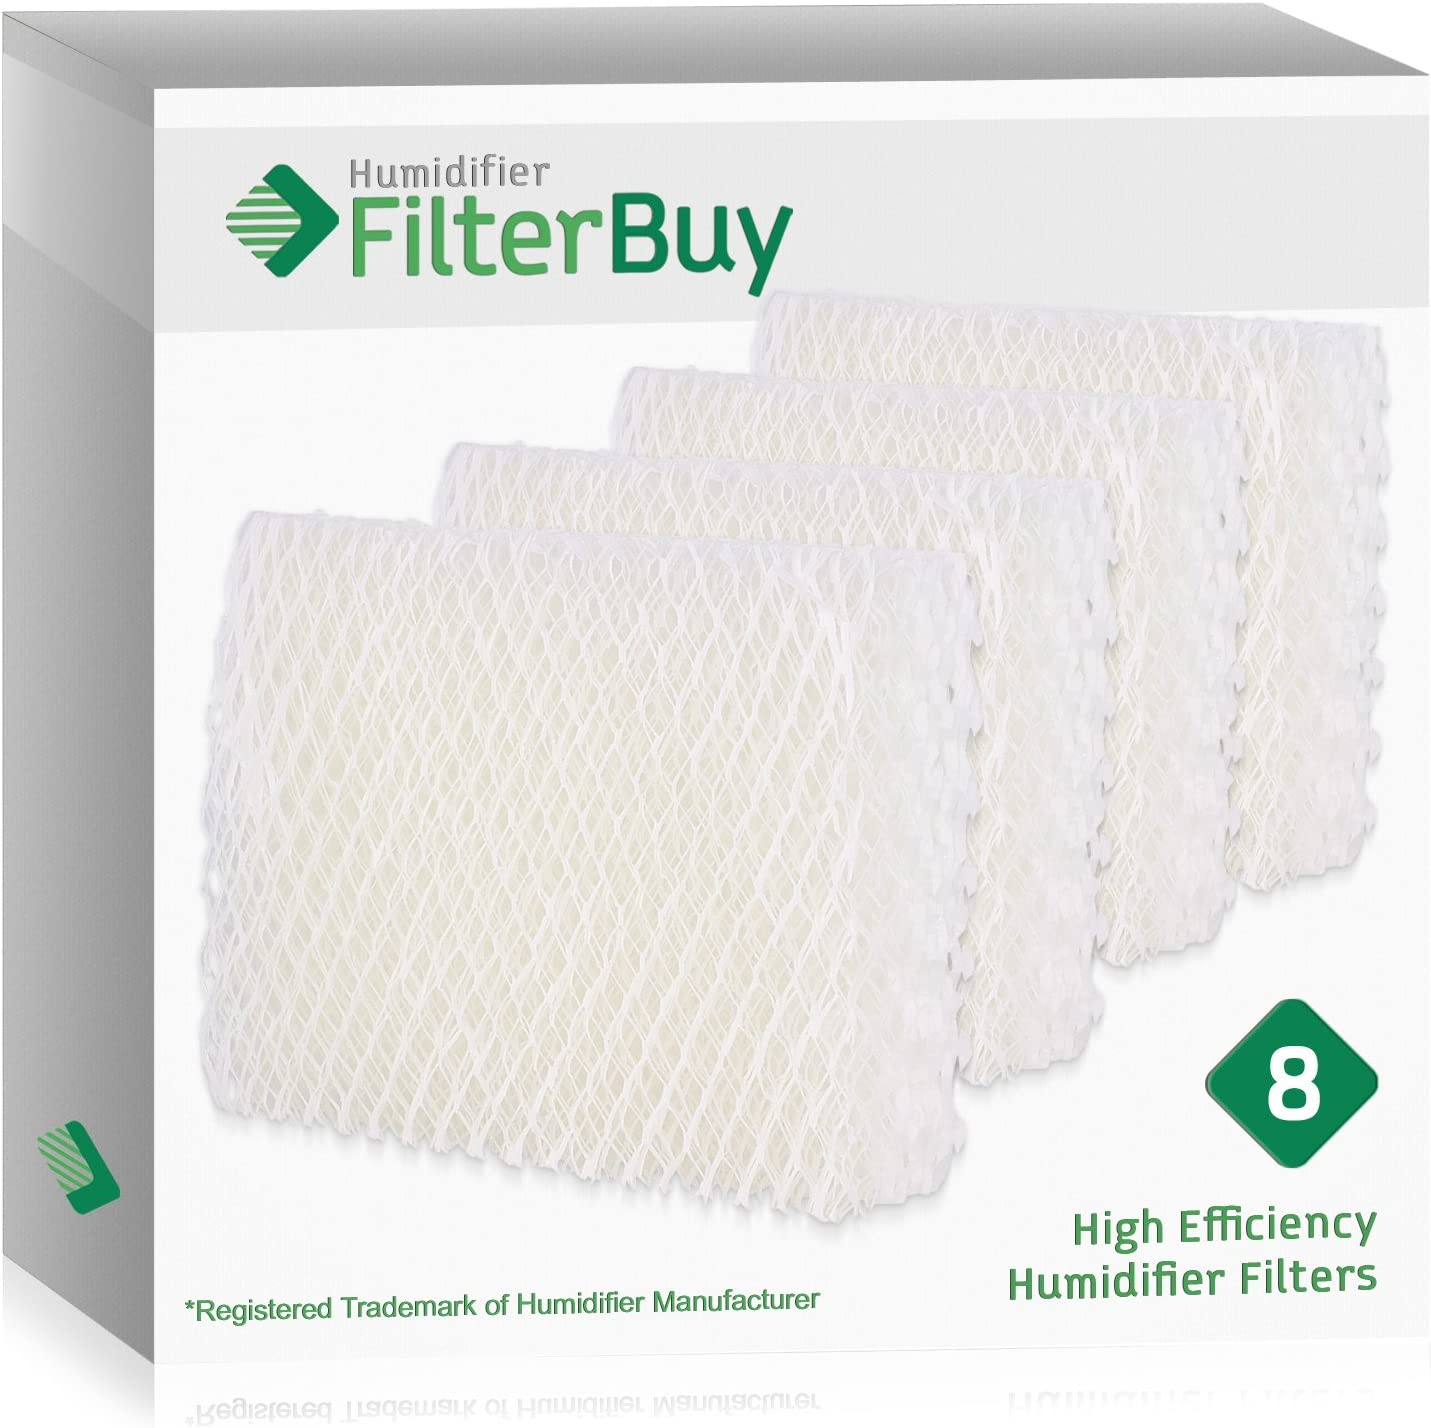 4 PACK COMPATIBLE KENMORE 758.144170 HUMIDIFIER REPLACEMENT FILTERS